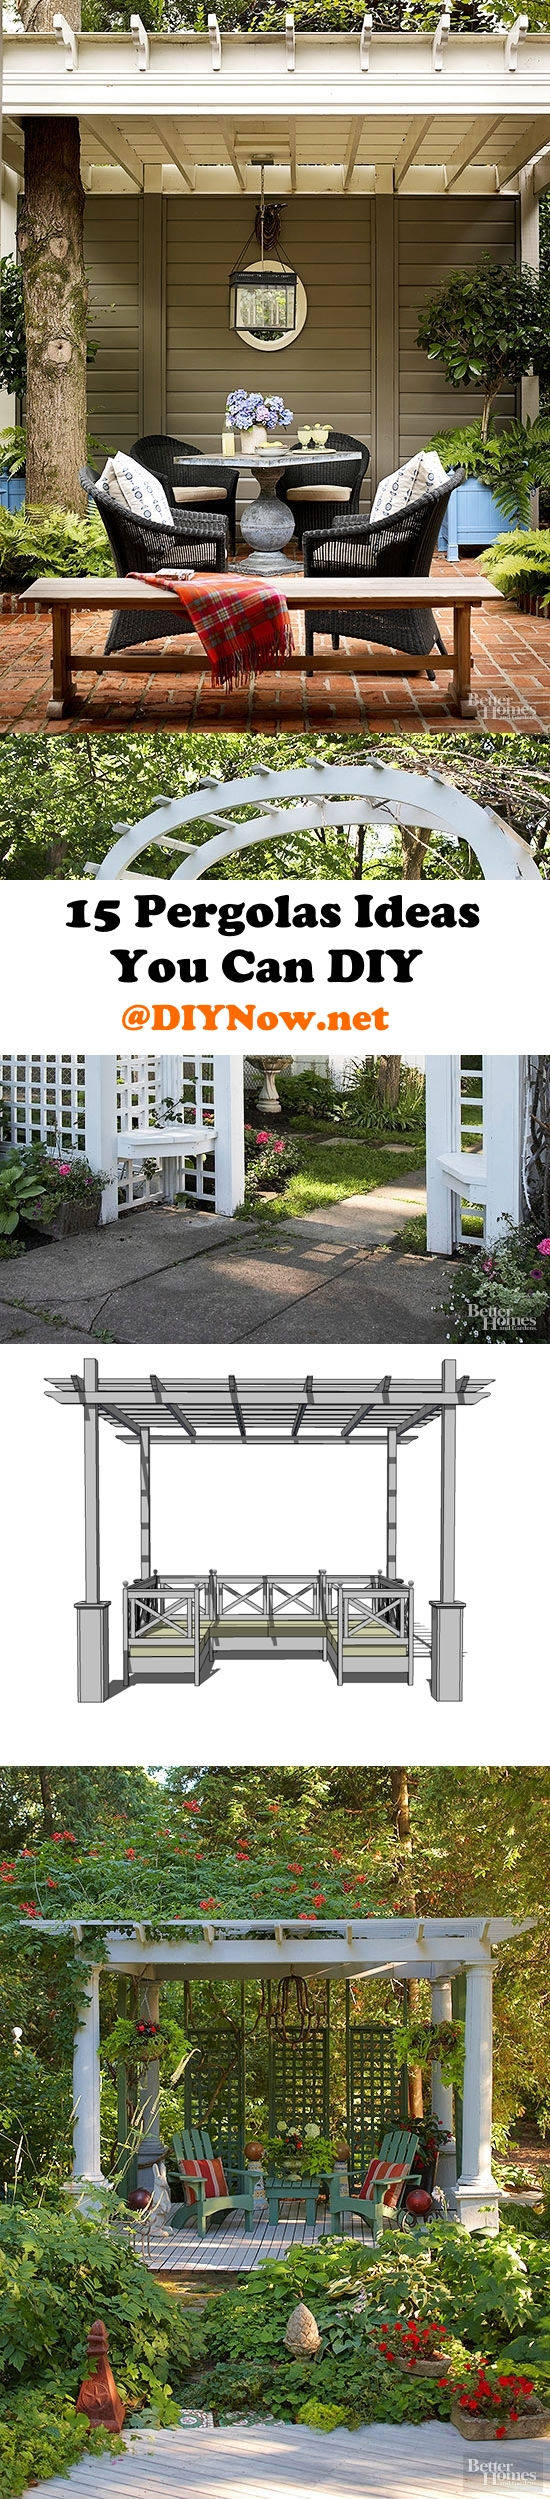 15 Pergolas Ideas You Can DIY